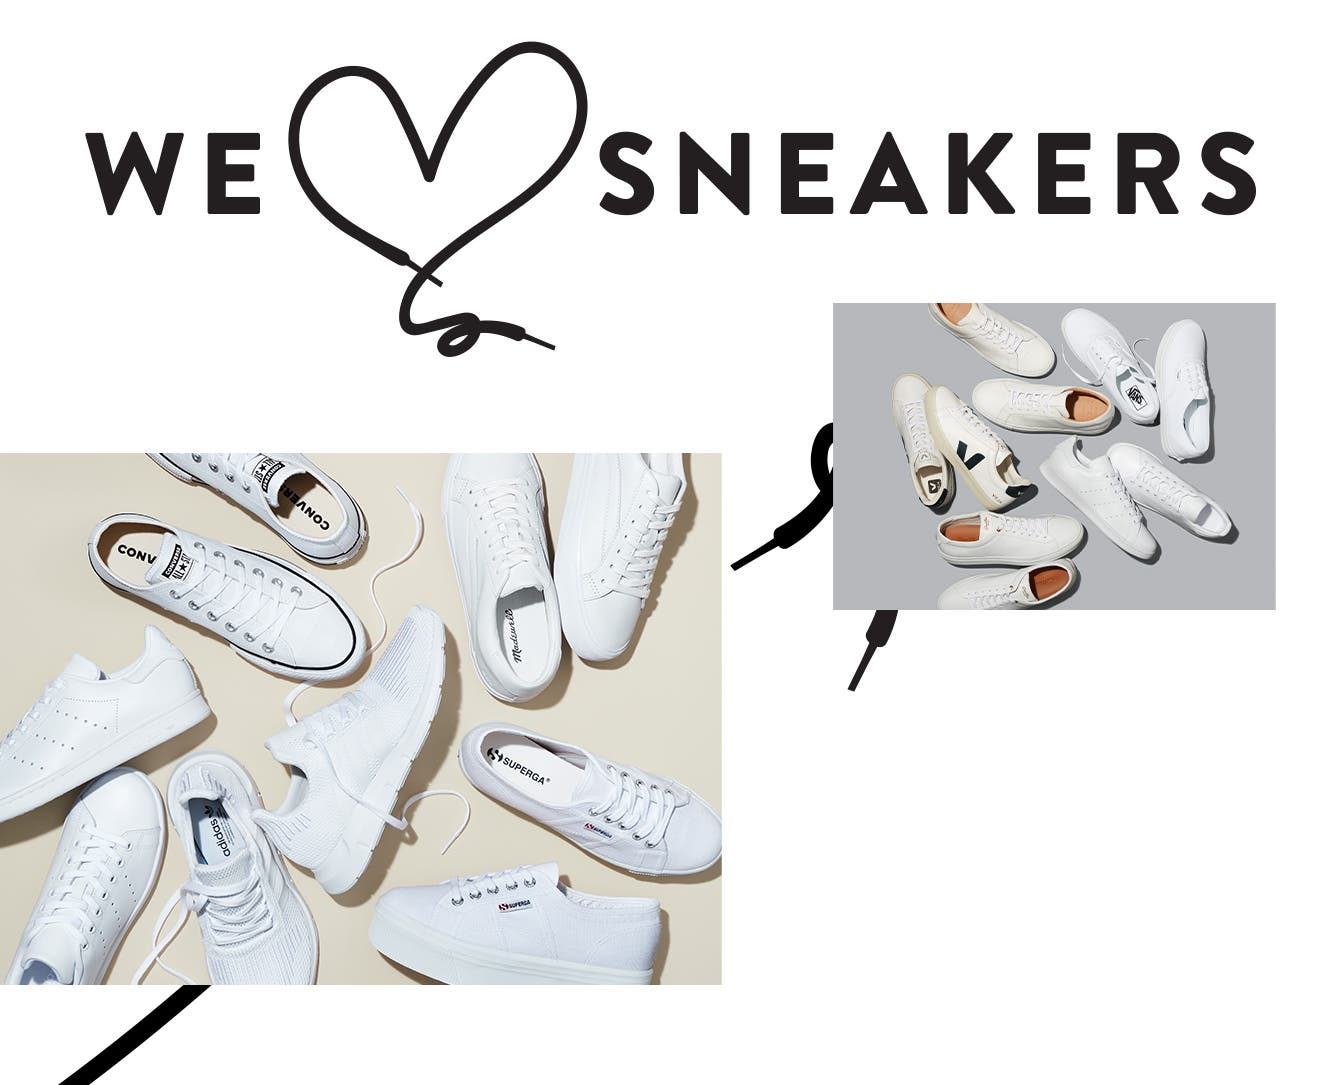 White hot: shop men's and women's white sneakers